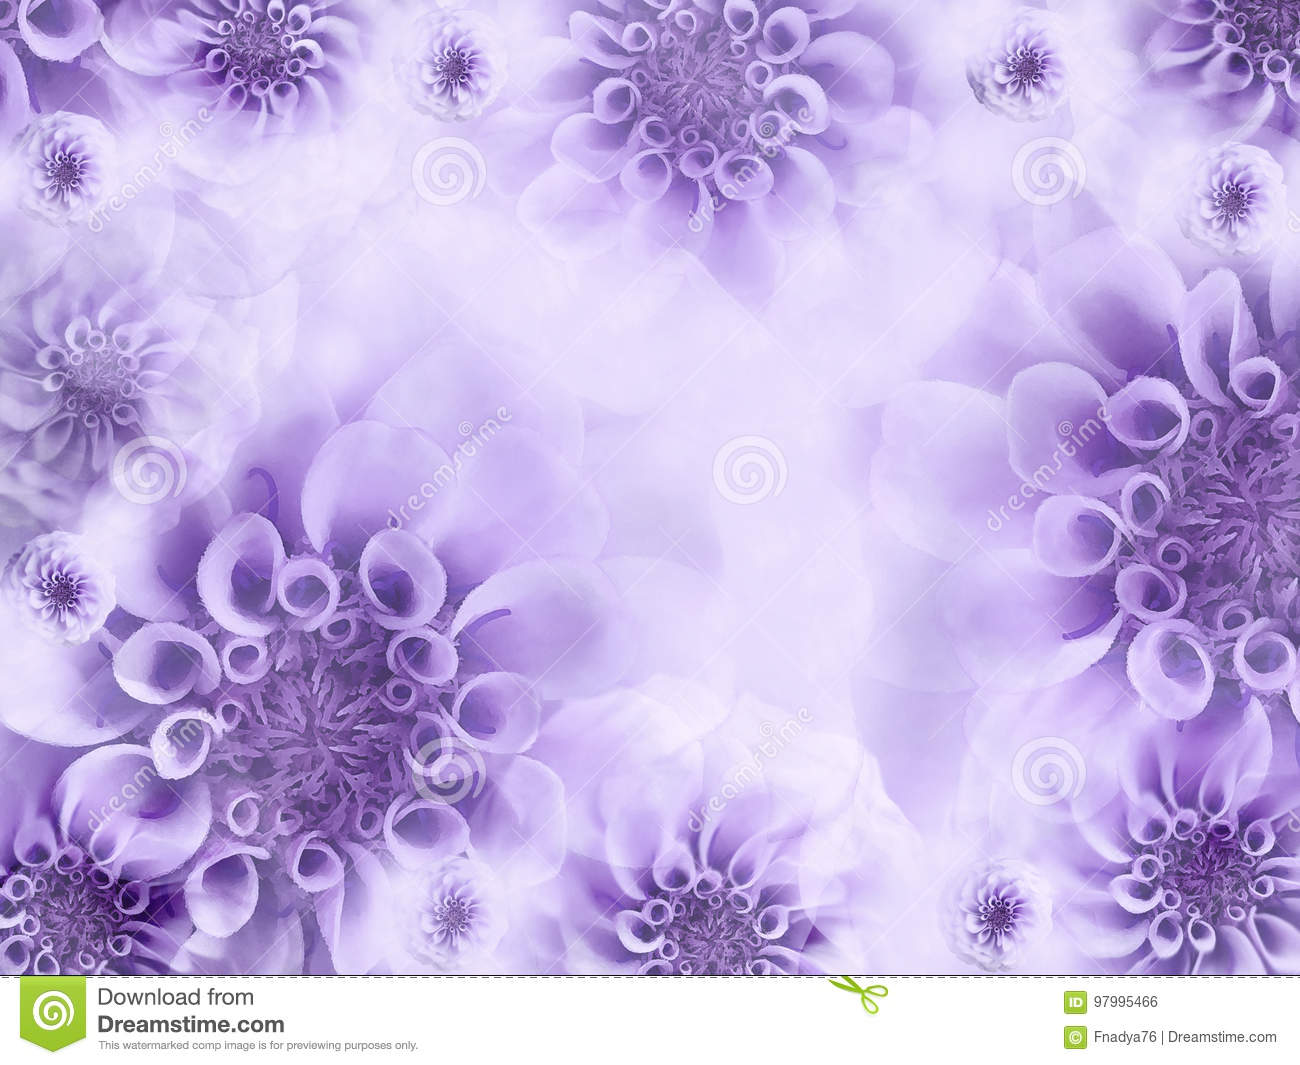 floral whiteviolet beautiful background wallpapers of